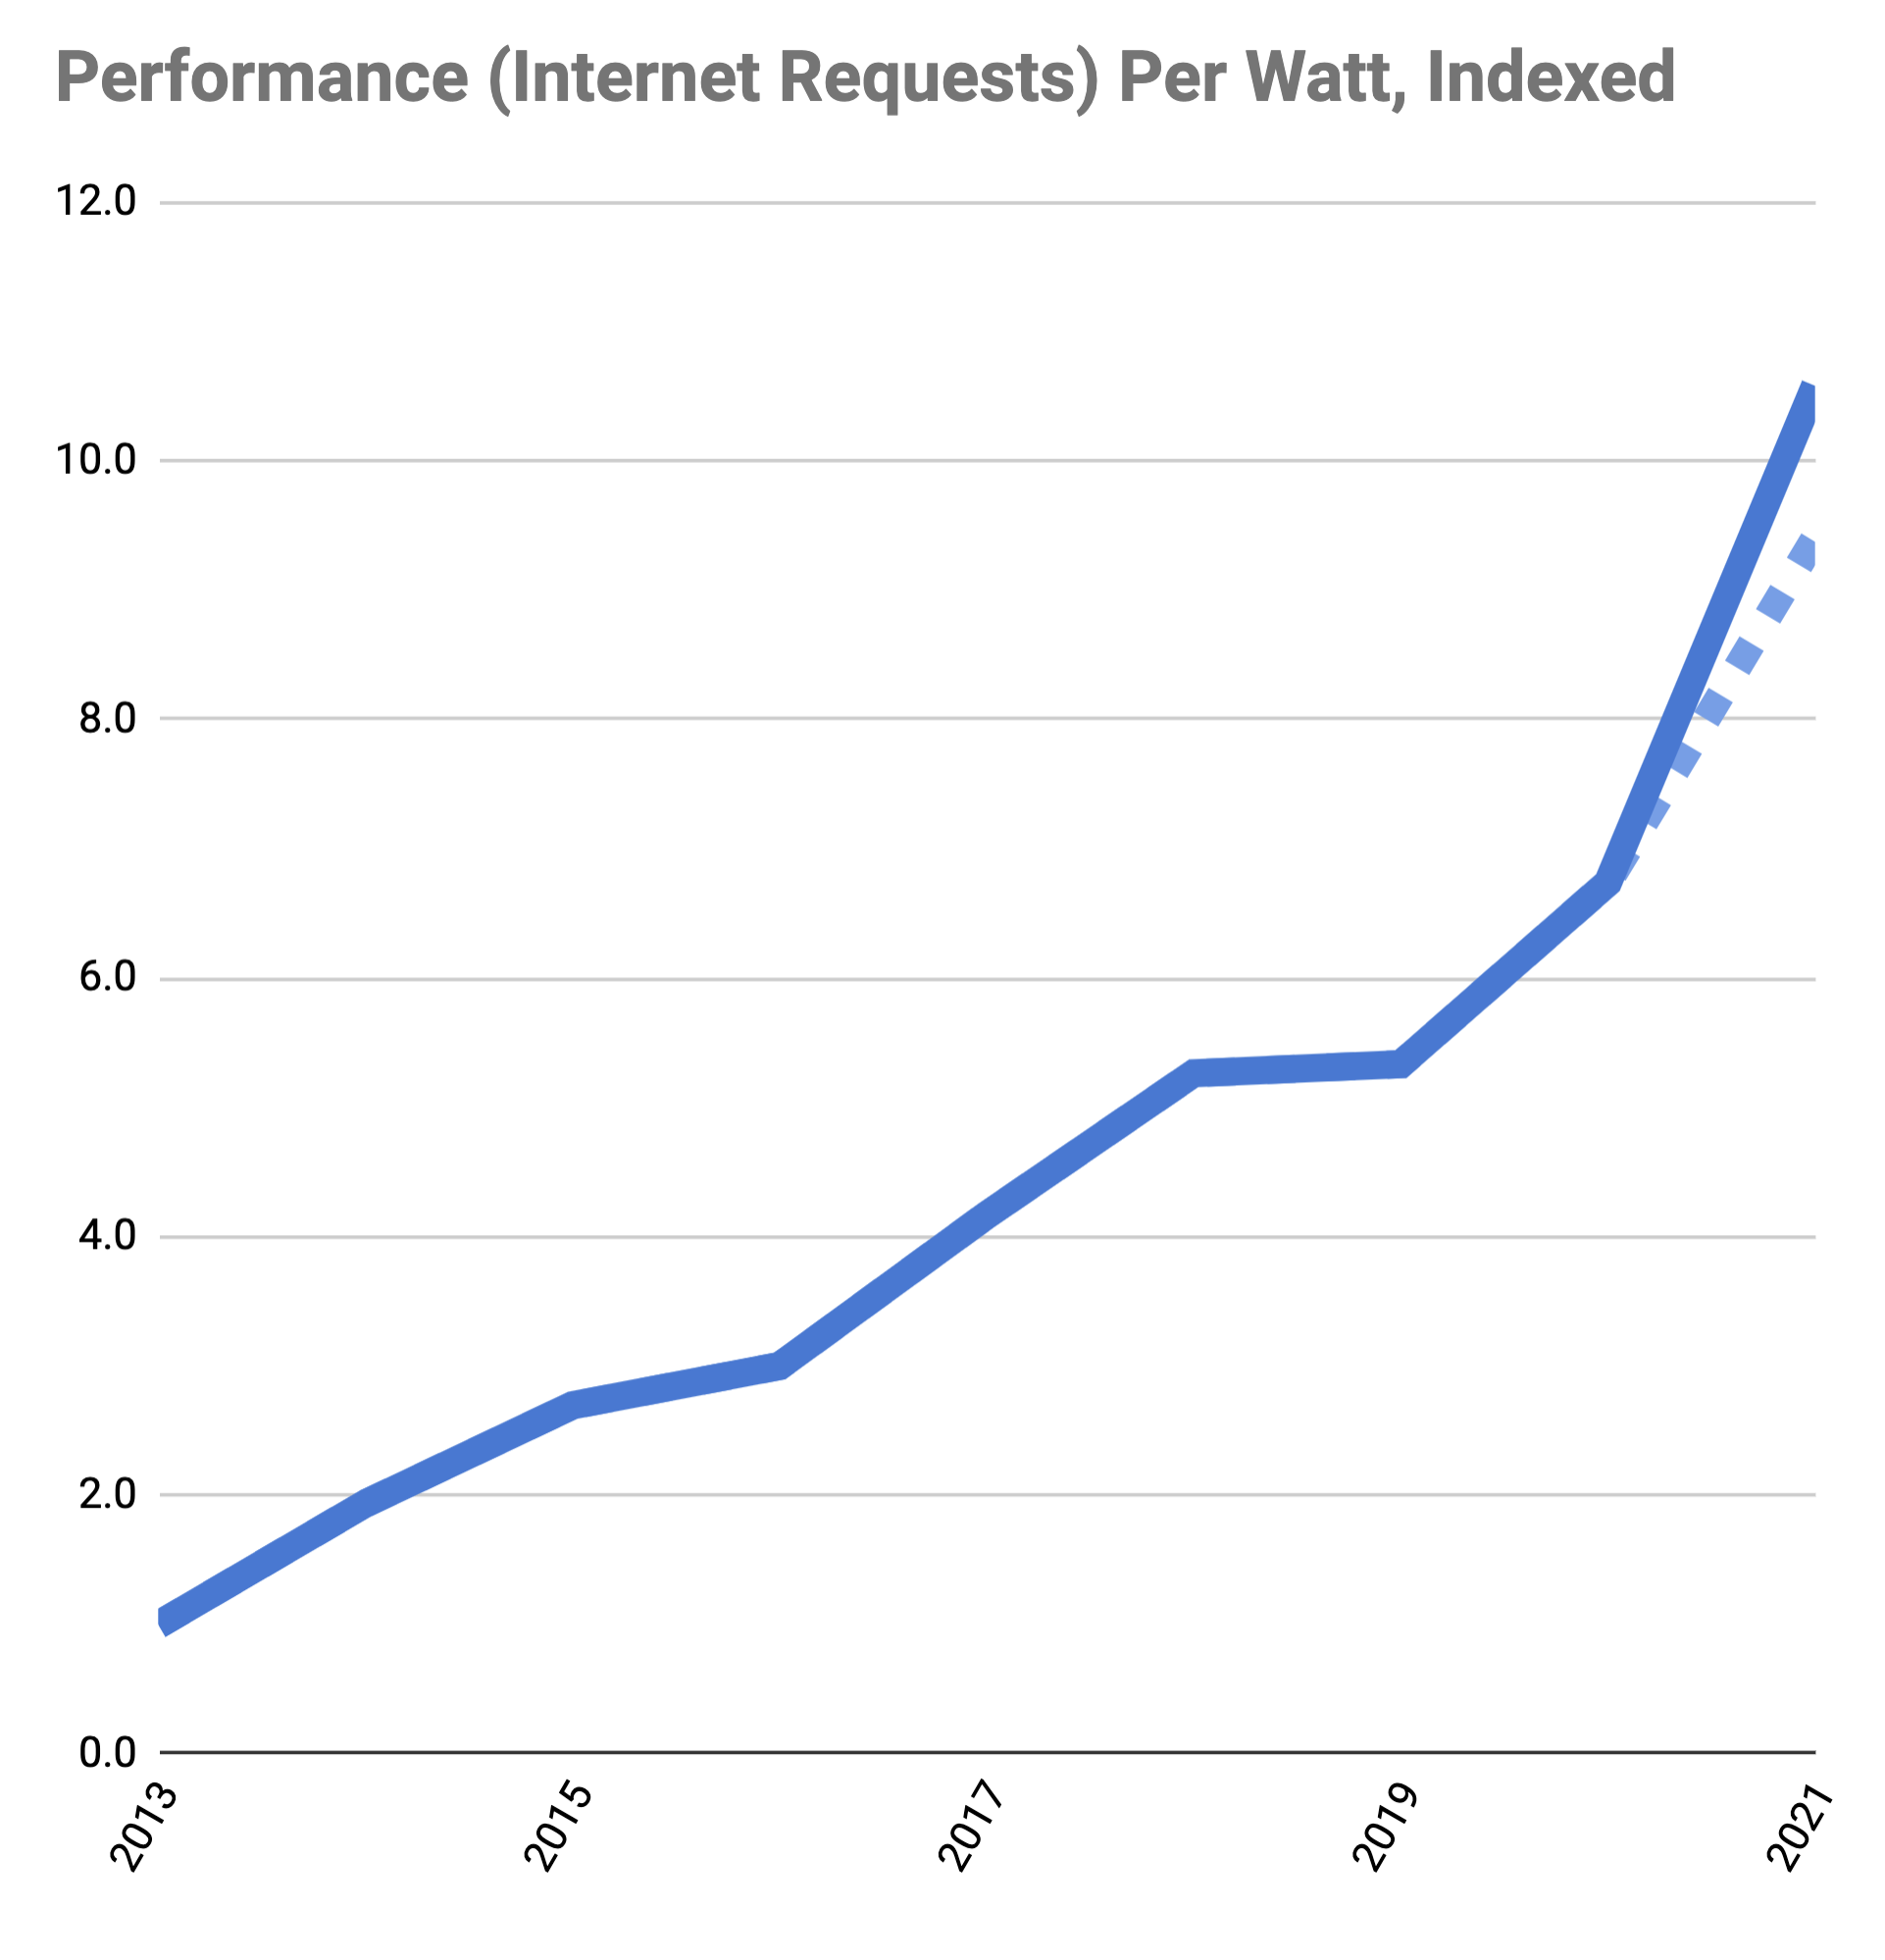 Designing Edge Servers with Arm CPUs to Deliver 57% More Performance Per Watt